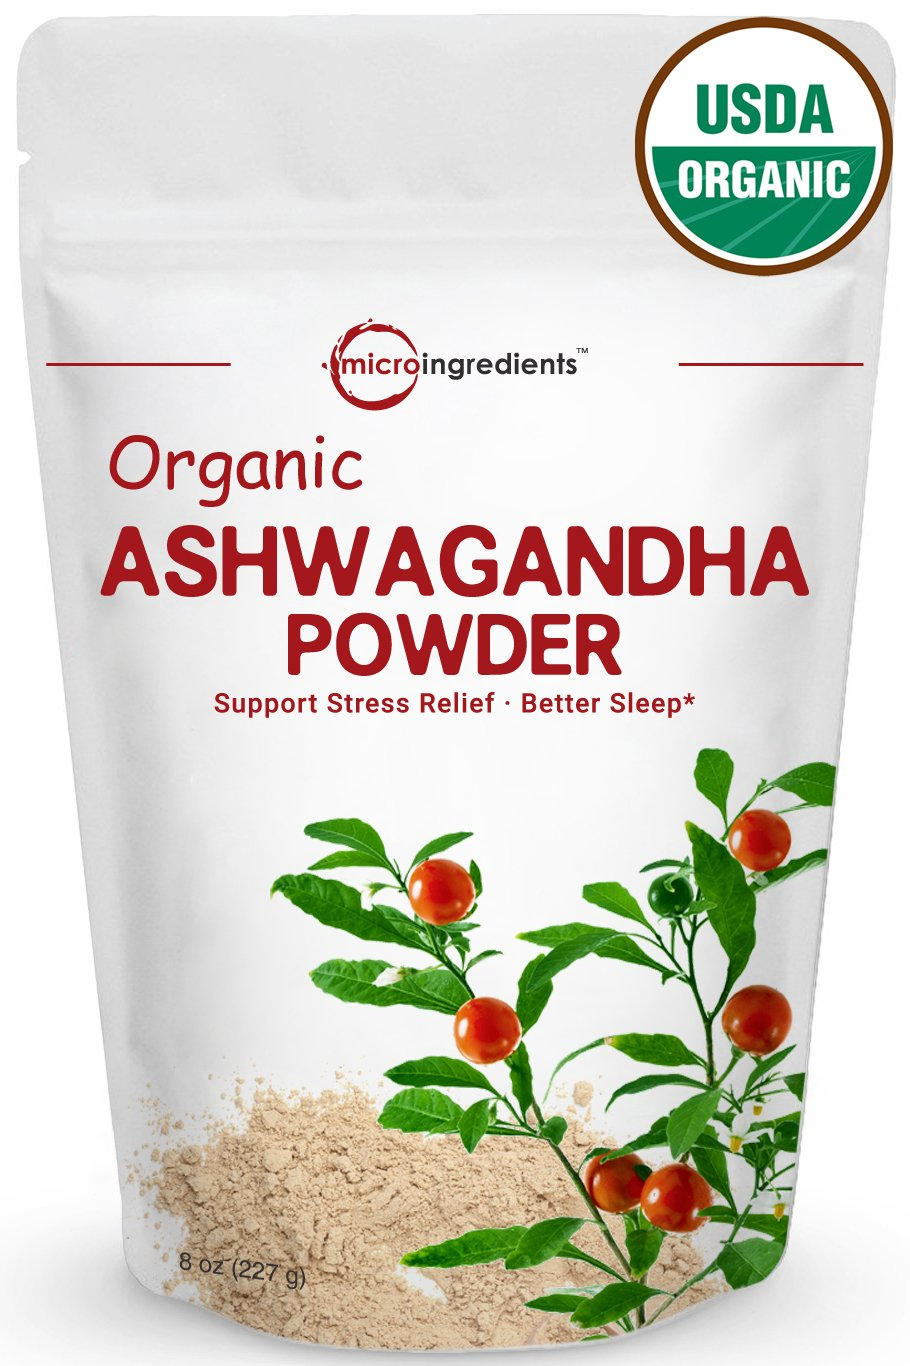 Premium Pure Organic Ashwagandha Root Powder, Adaptogenic Ayurvedic Herbal Supplement That Promotes Vitality & Strength - Support for Stress-free Living, 8oz (227g)